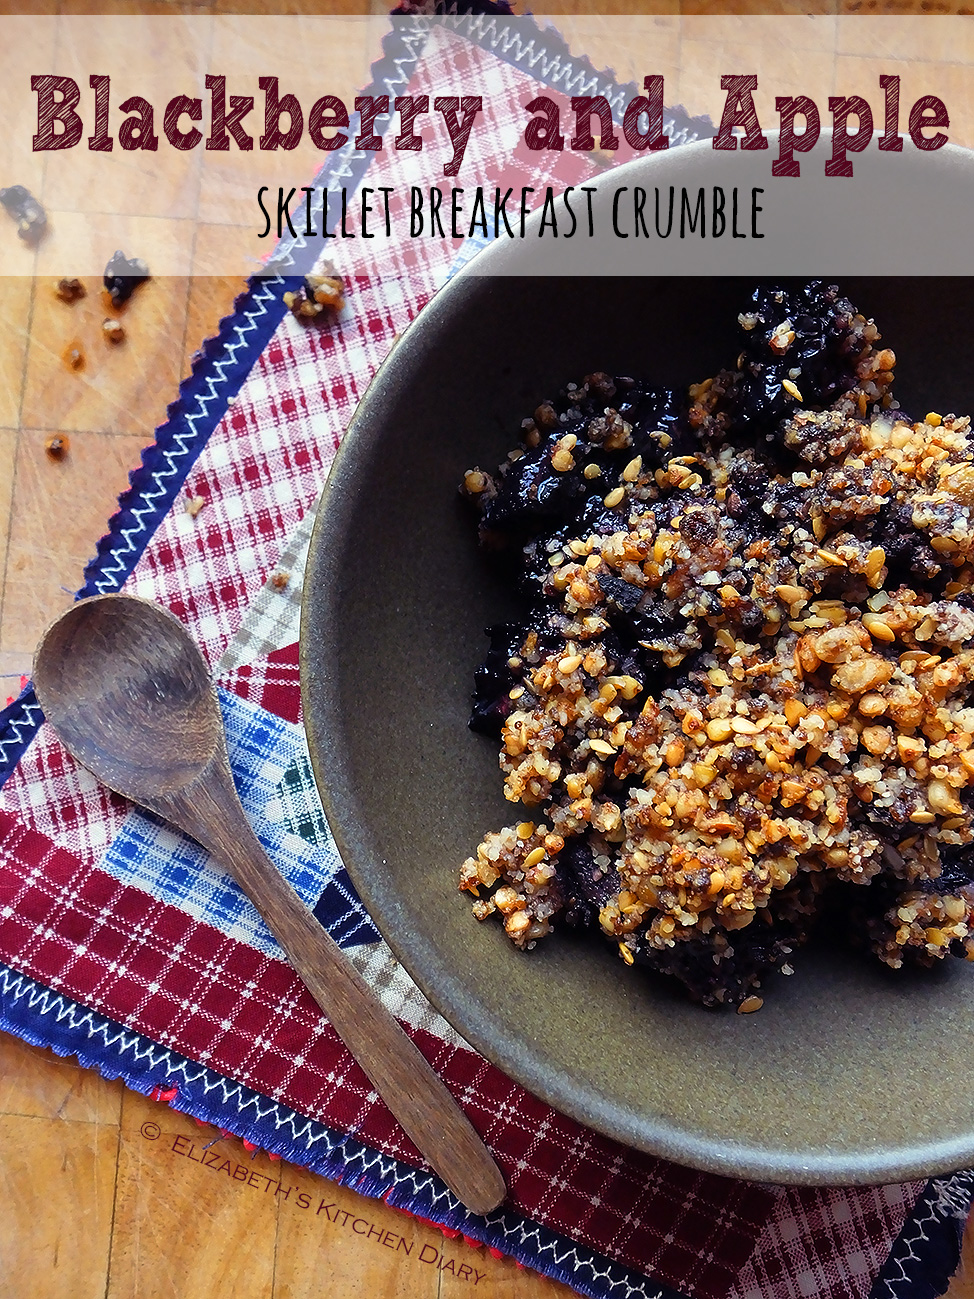 Blackberry and Apple Skillet Breakfast Crumble